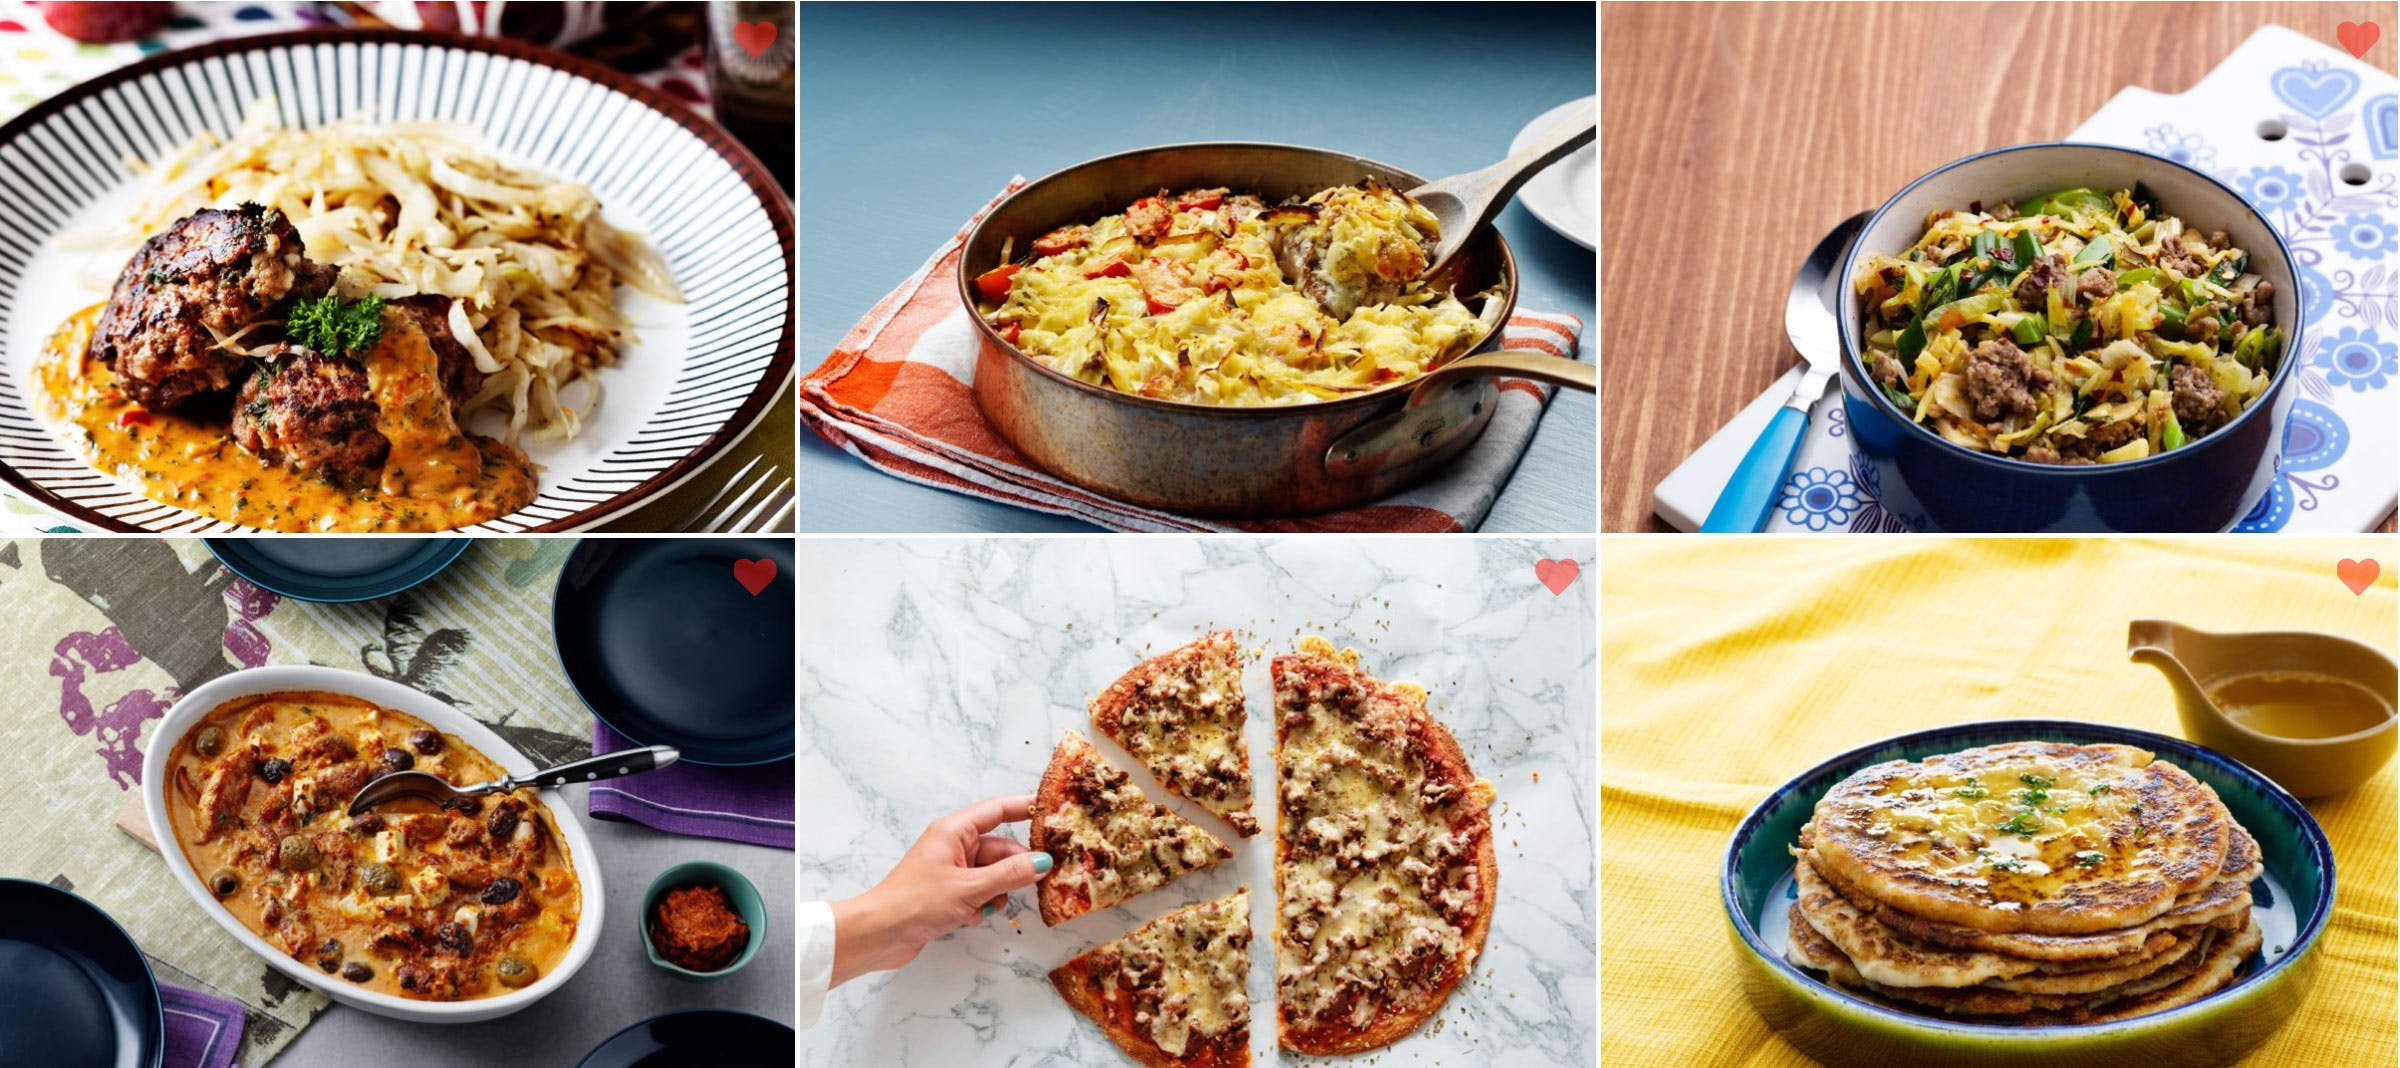 New <strong>Keto Recipes</strong> Page